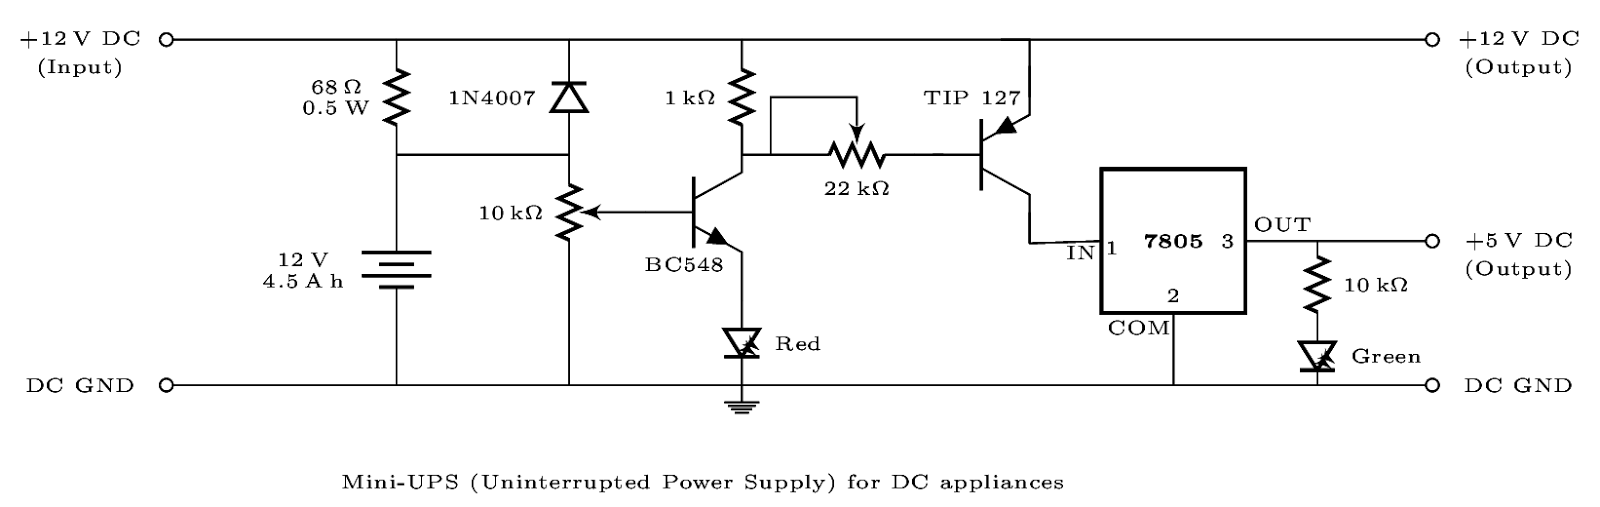 medium resolution of technical musings diy mini ups for charging phones or running wifi the circuit diagram was